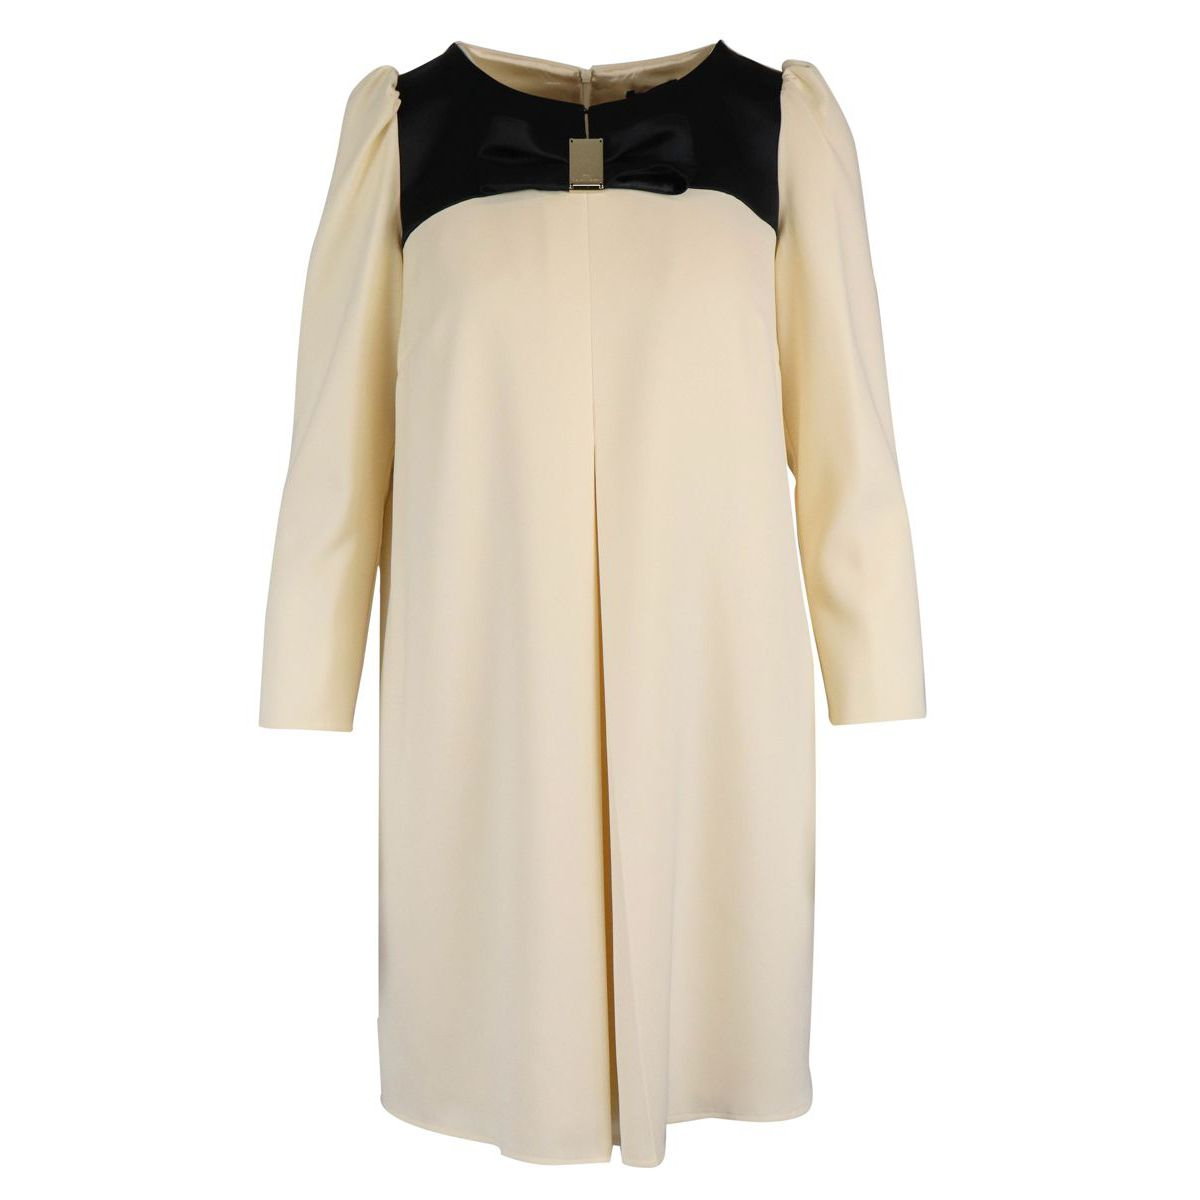 Soft dress with bow Butter / black Elisabetta Franchi